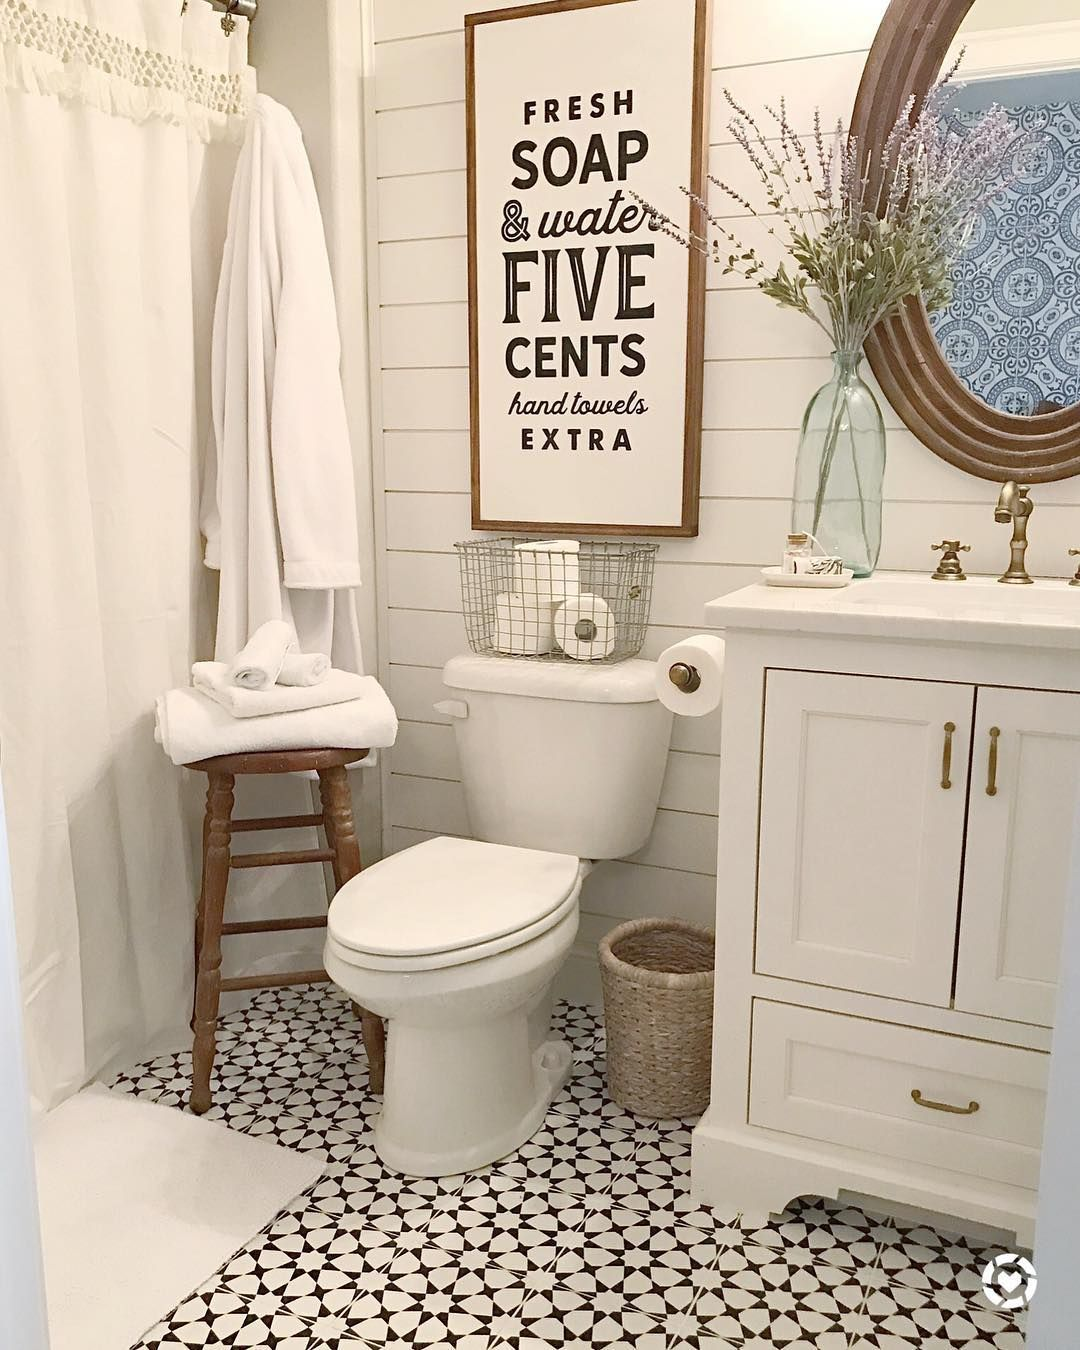 I Was Up Before The Kids This Morning Not Abnormal So I Decided To Have A Change Of Sce Modern Farmhouse Bathroom Farmhouse Bathroom Decor Bathrooms Remodel